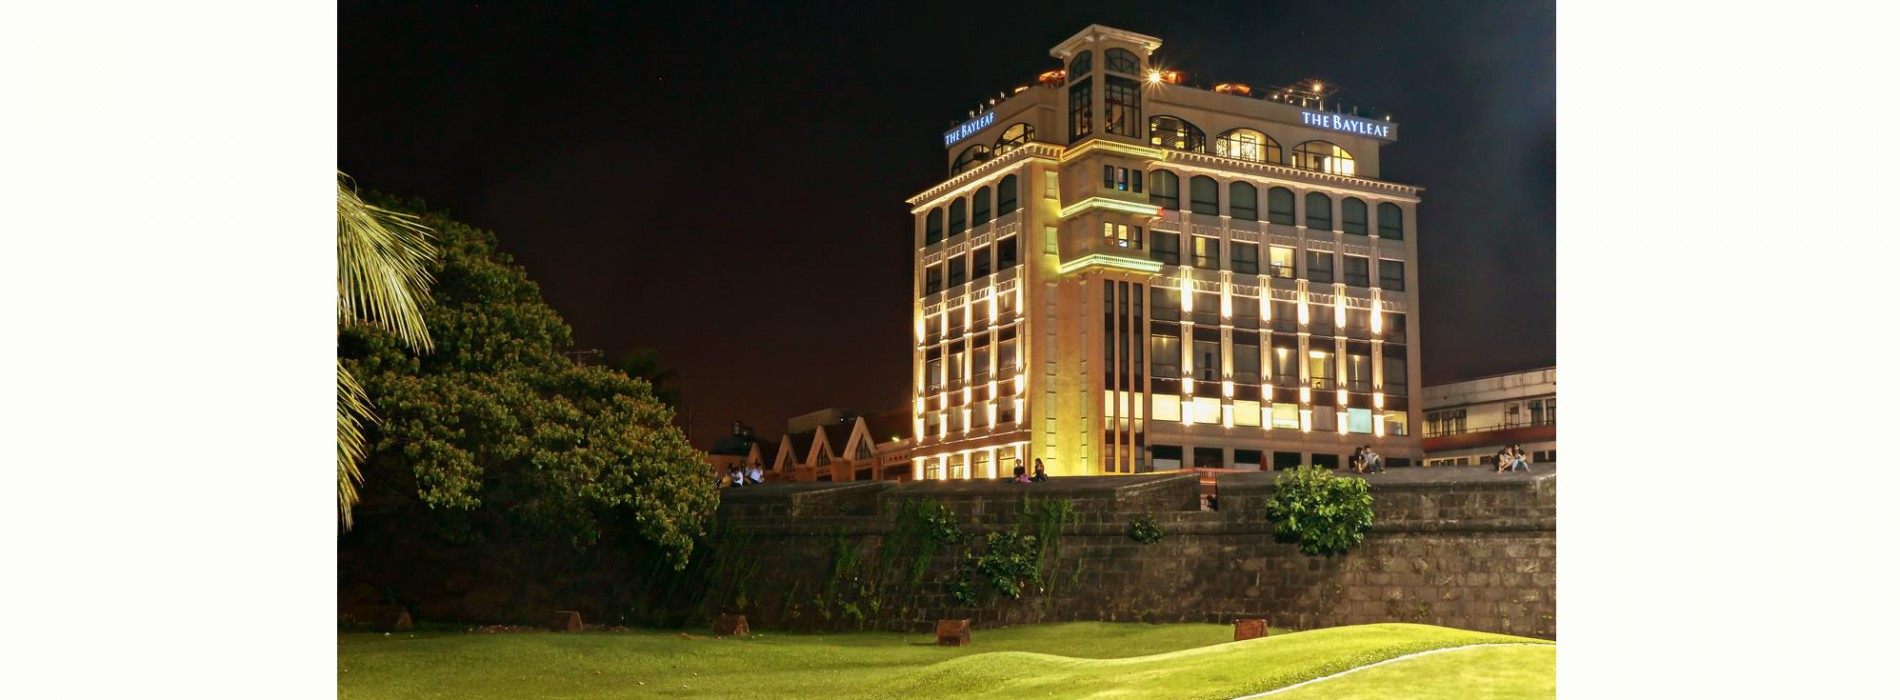 Luxury boutique hotel in Philippines improves online sales with RateTiger